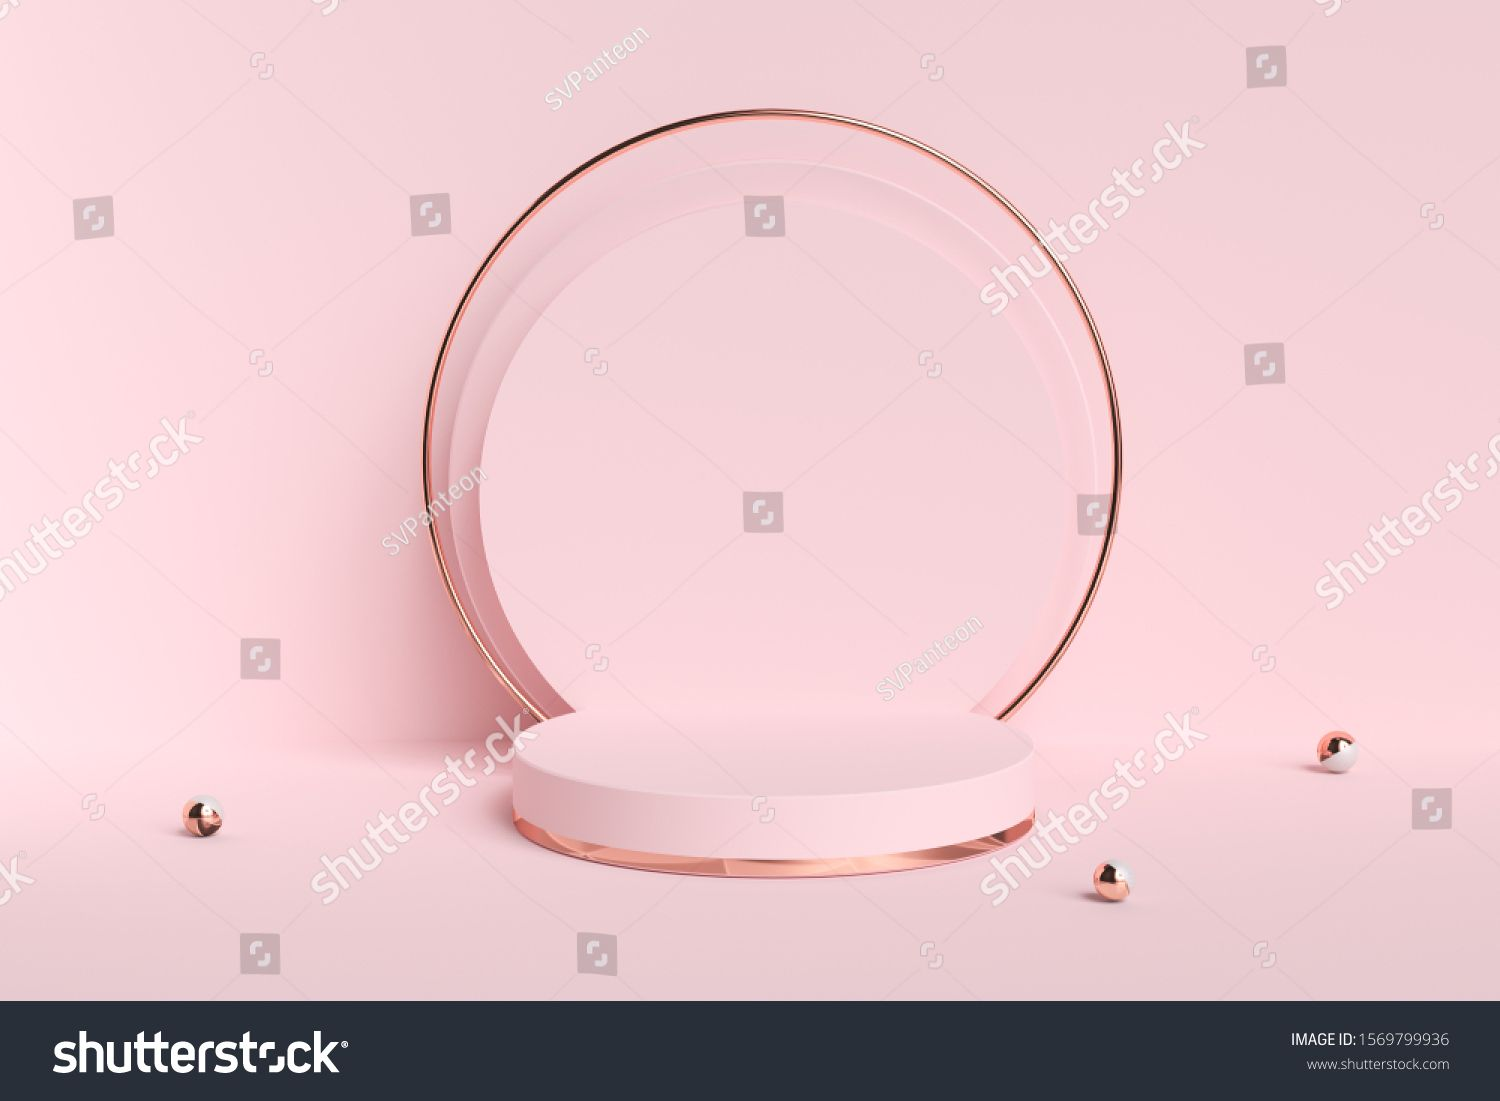 Cosmetic background for product presentation Pink and gold abstract podium 3d illustration